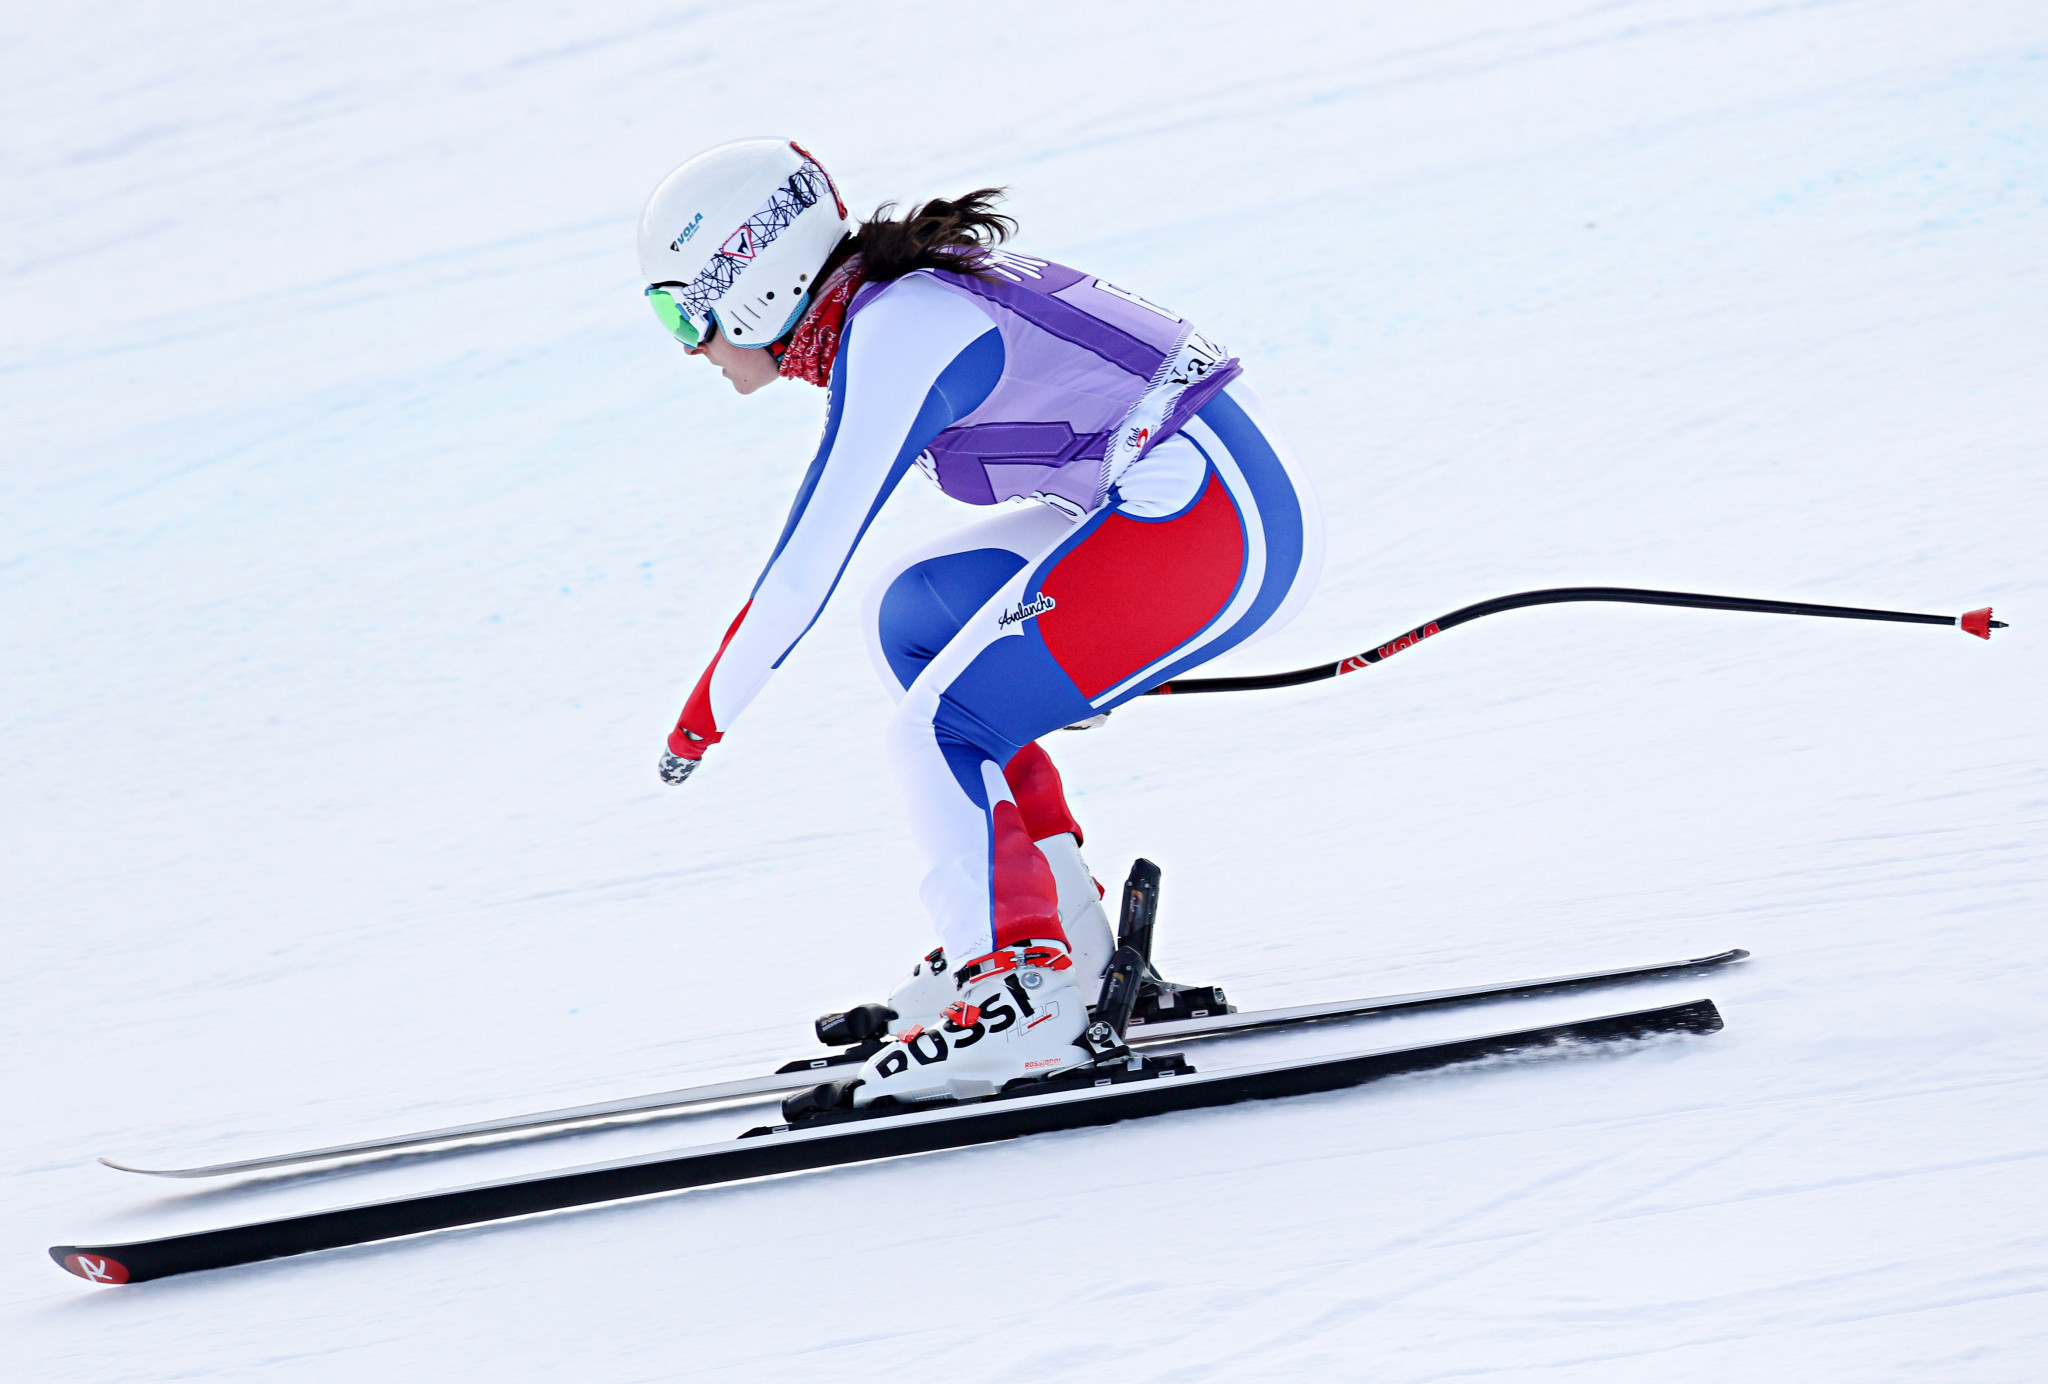 Bochet hoping to continue winning streak at World Para Alpine Skiing World Cup in Kranjska Gora